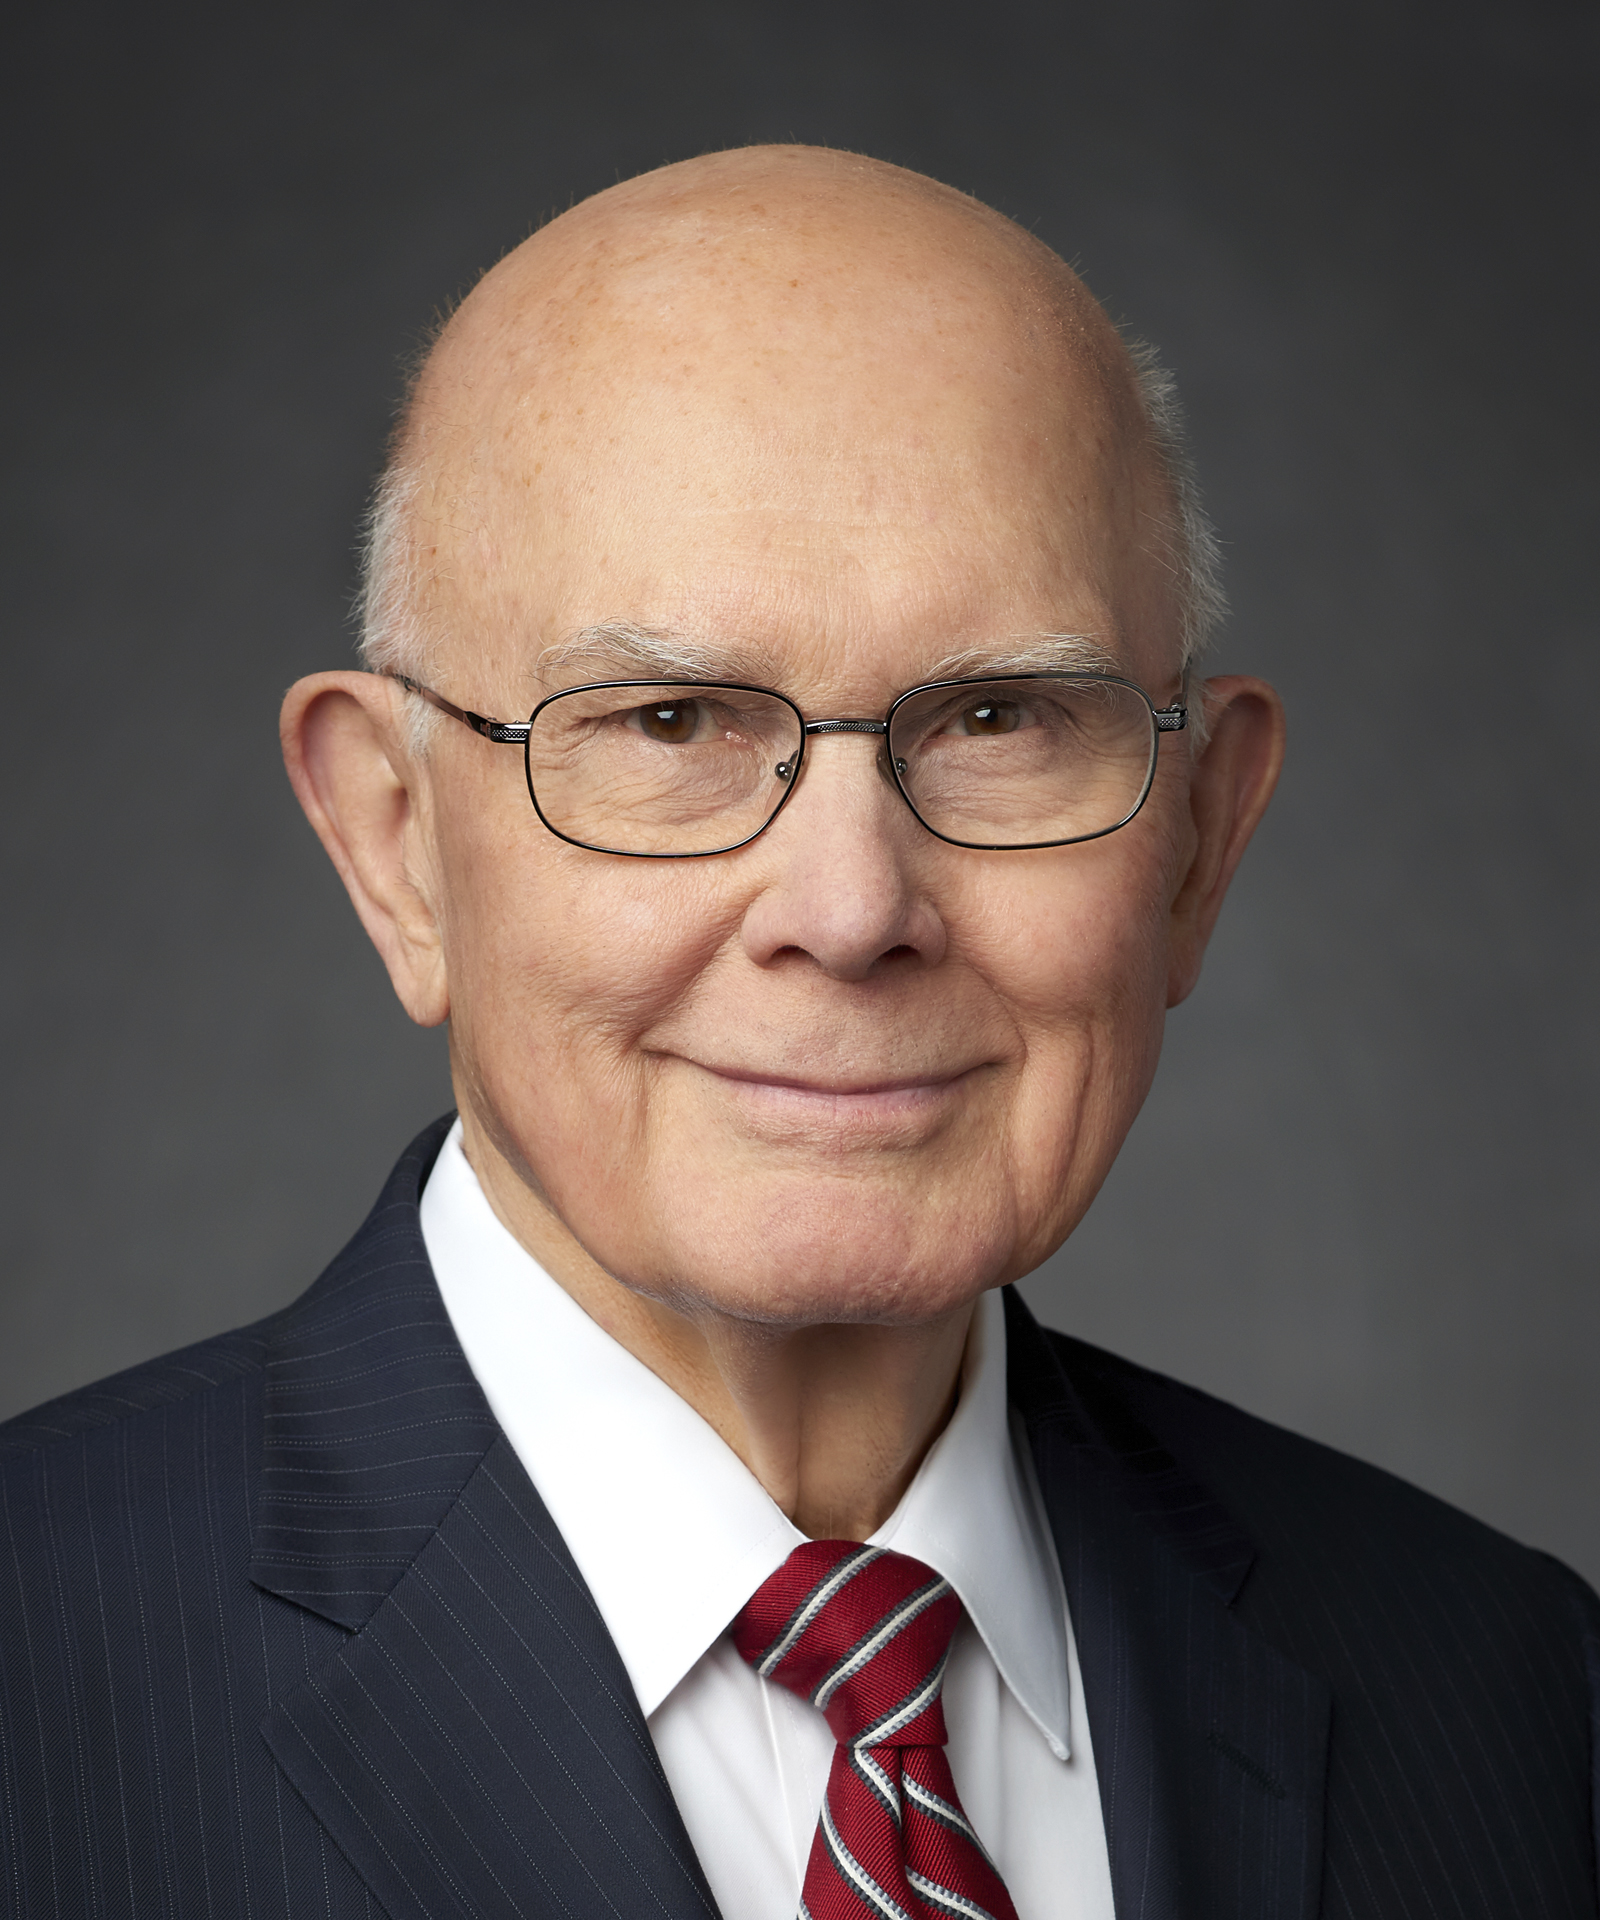 President Dallin H. Oaks, first counselor in the First Presidency.